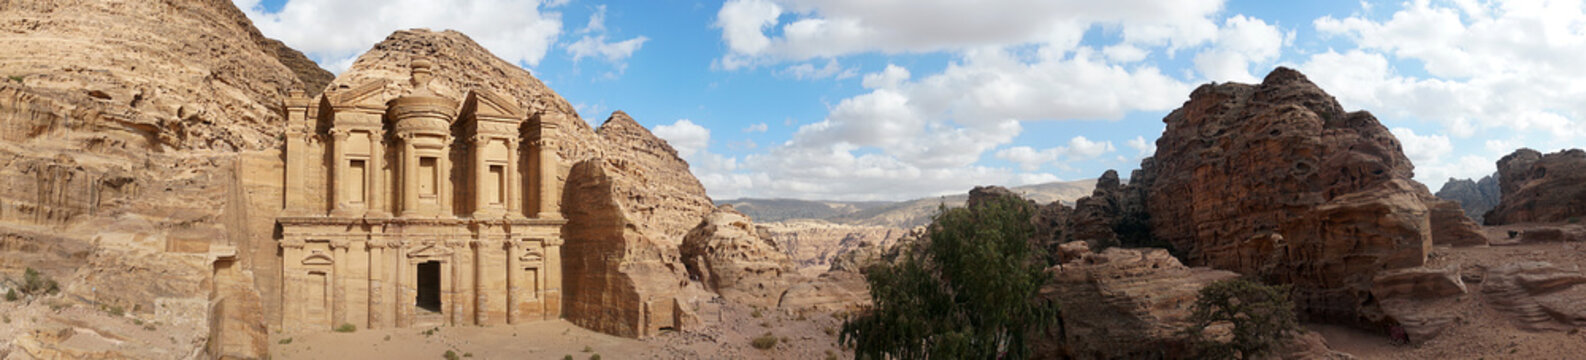 Ad-Deir-Nabataean rock temple of the I century ad, preserved near the city of Peter. a monumental building carved entirely from the rock. Lost city in the mountains. Panoramic view of Petra